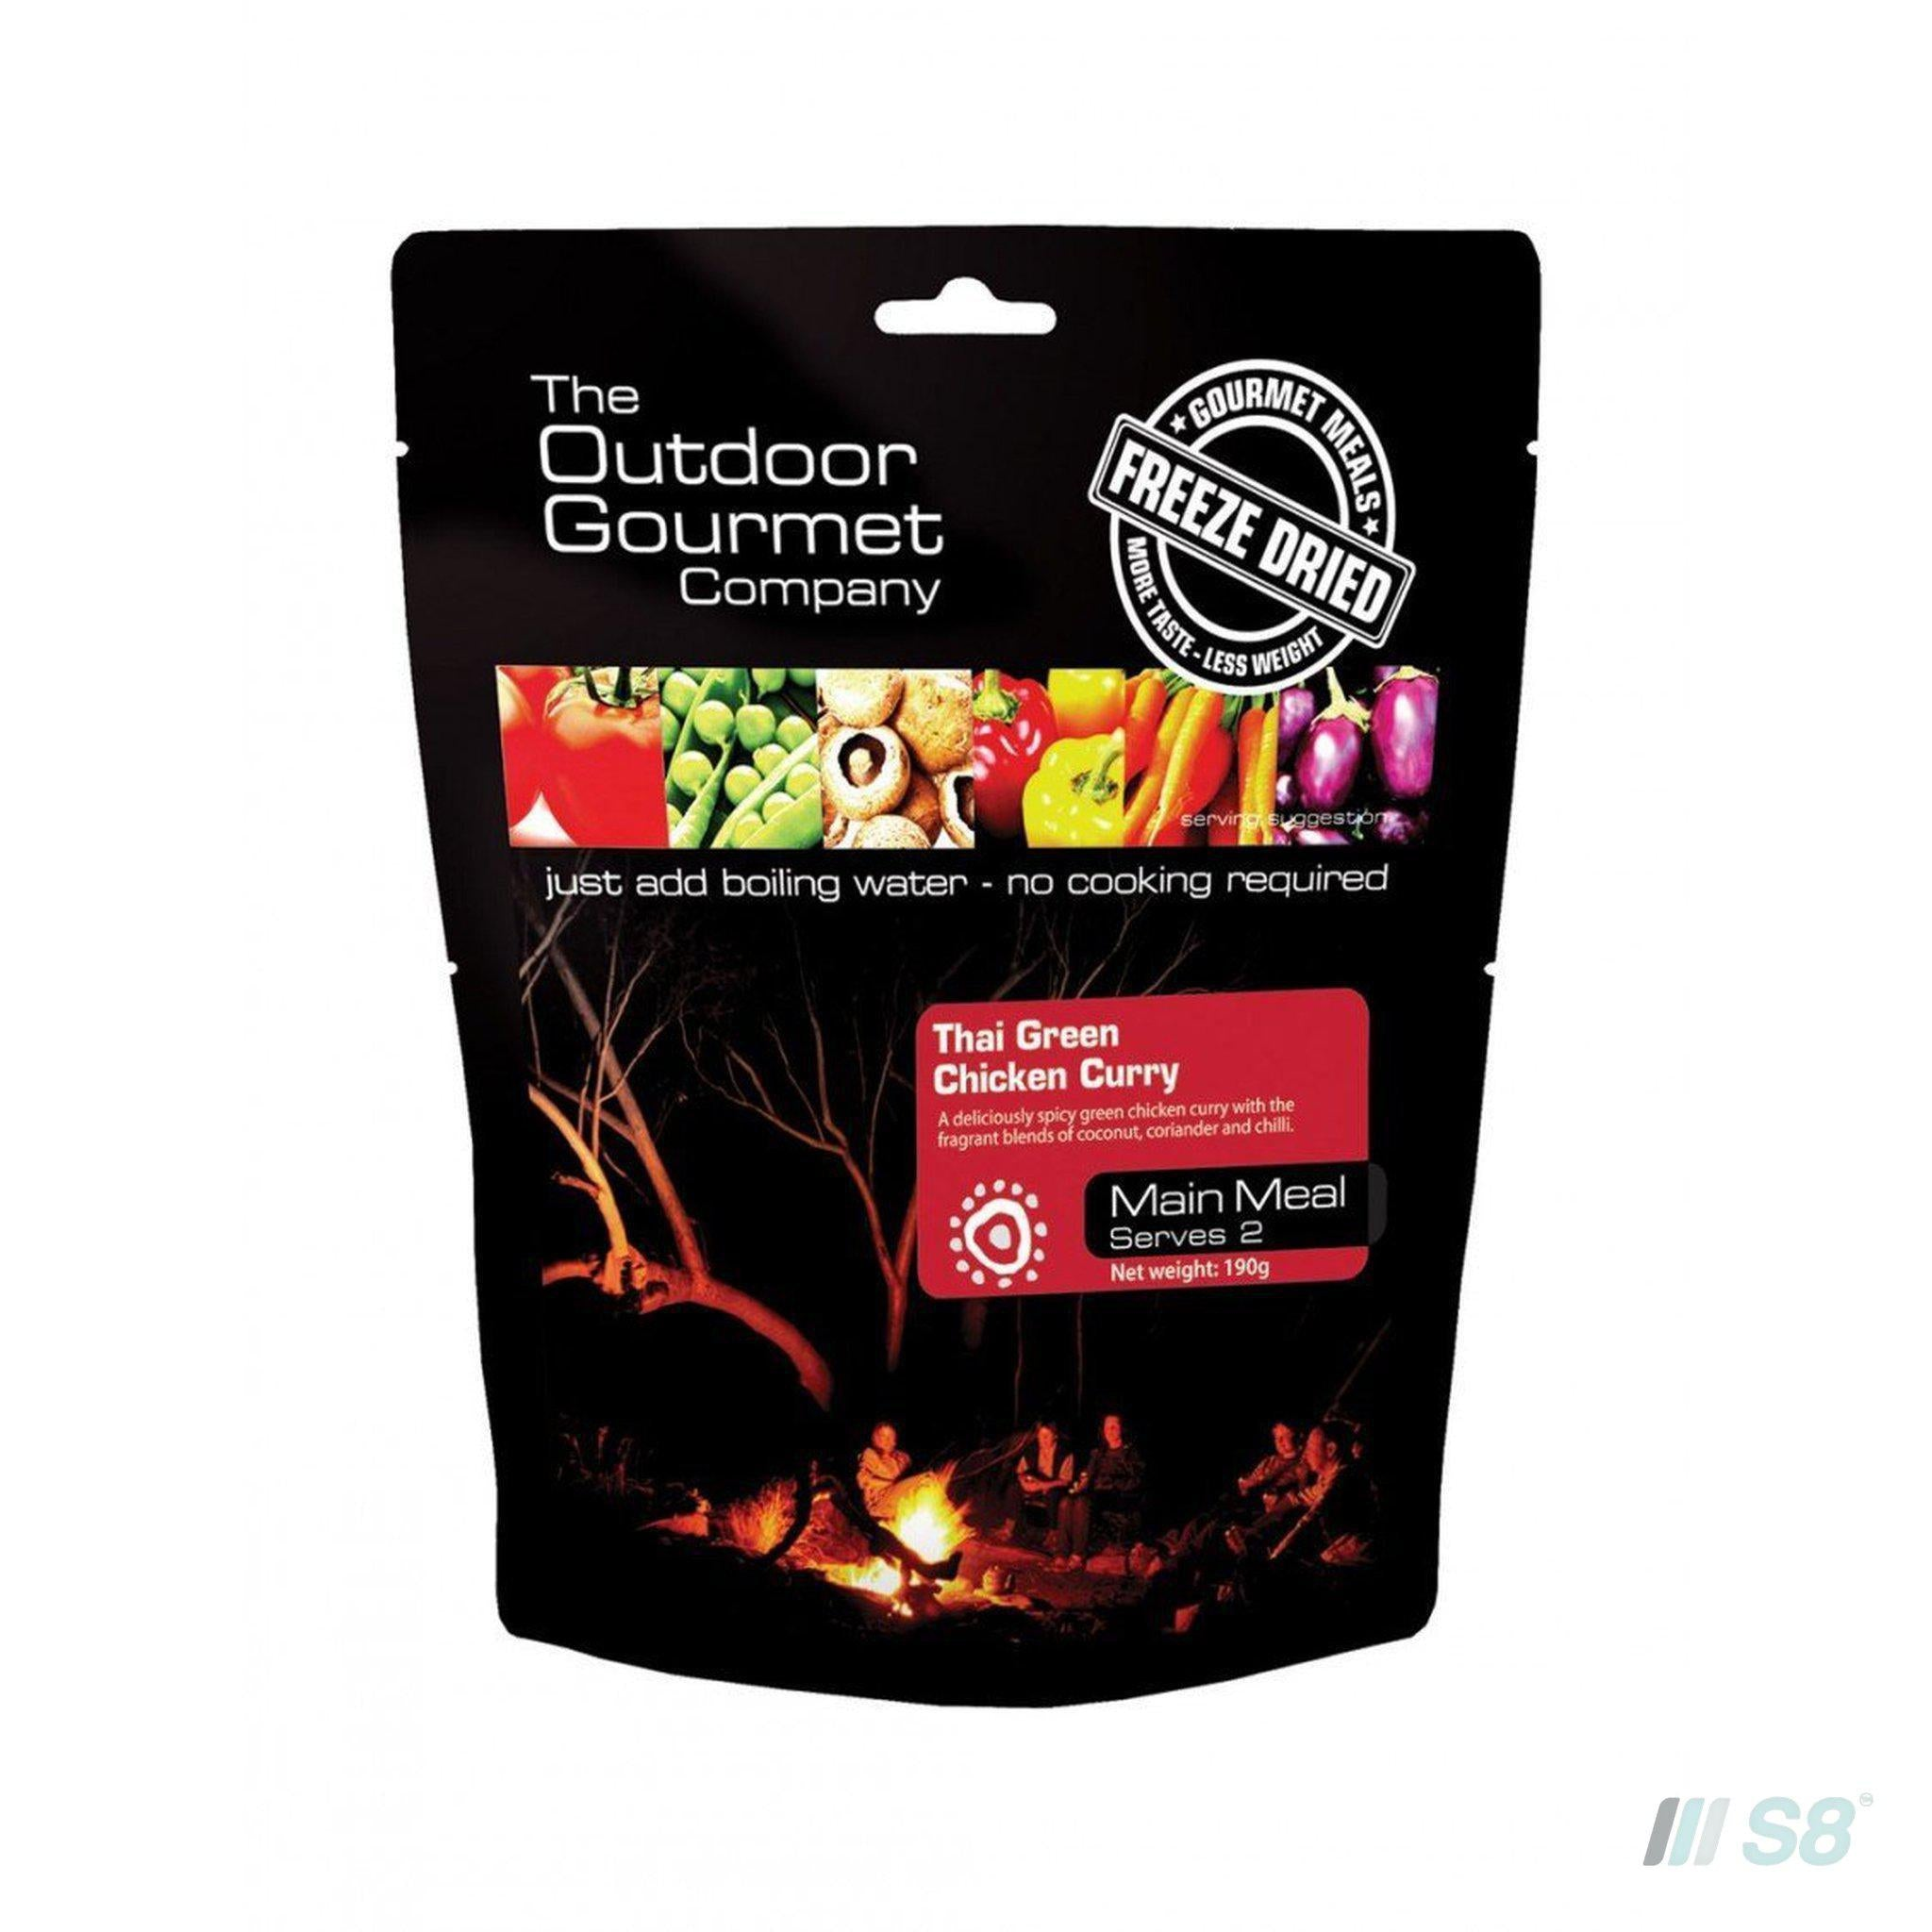 OGC THAI GREEN CHICKEN CURRY-Outdoor Gourmet Company-S8 Products Group